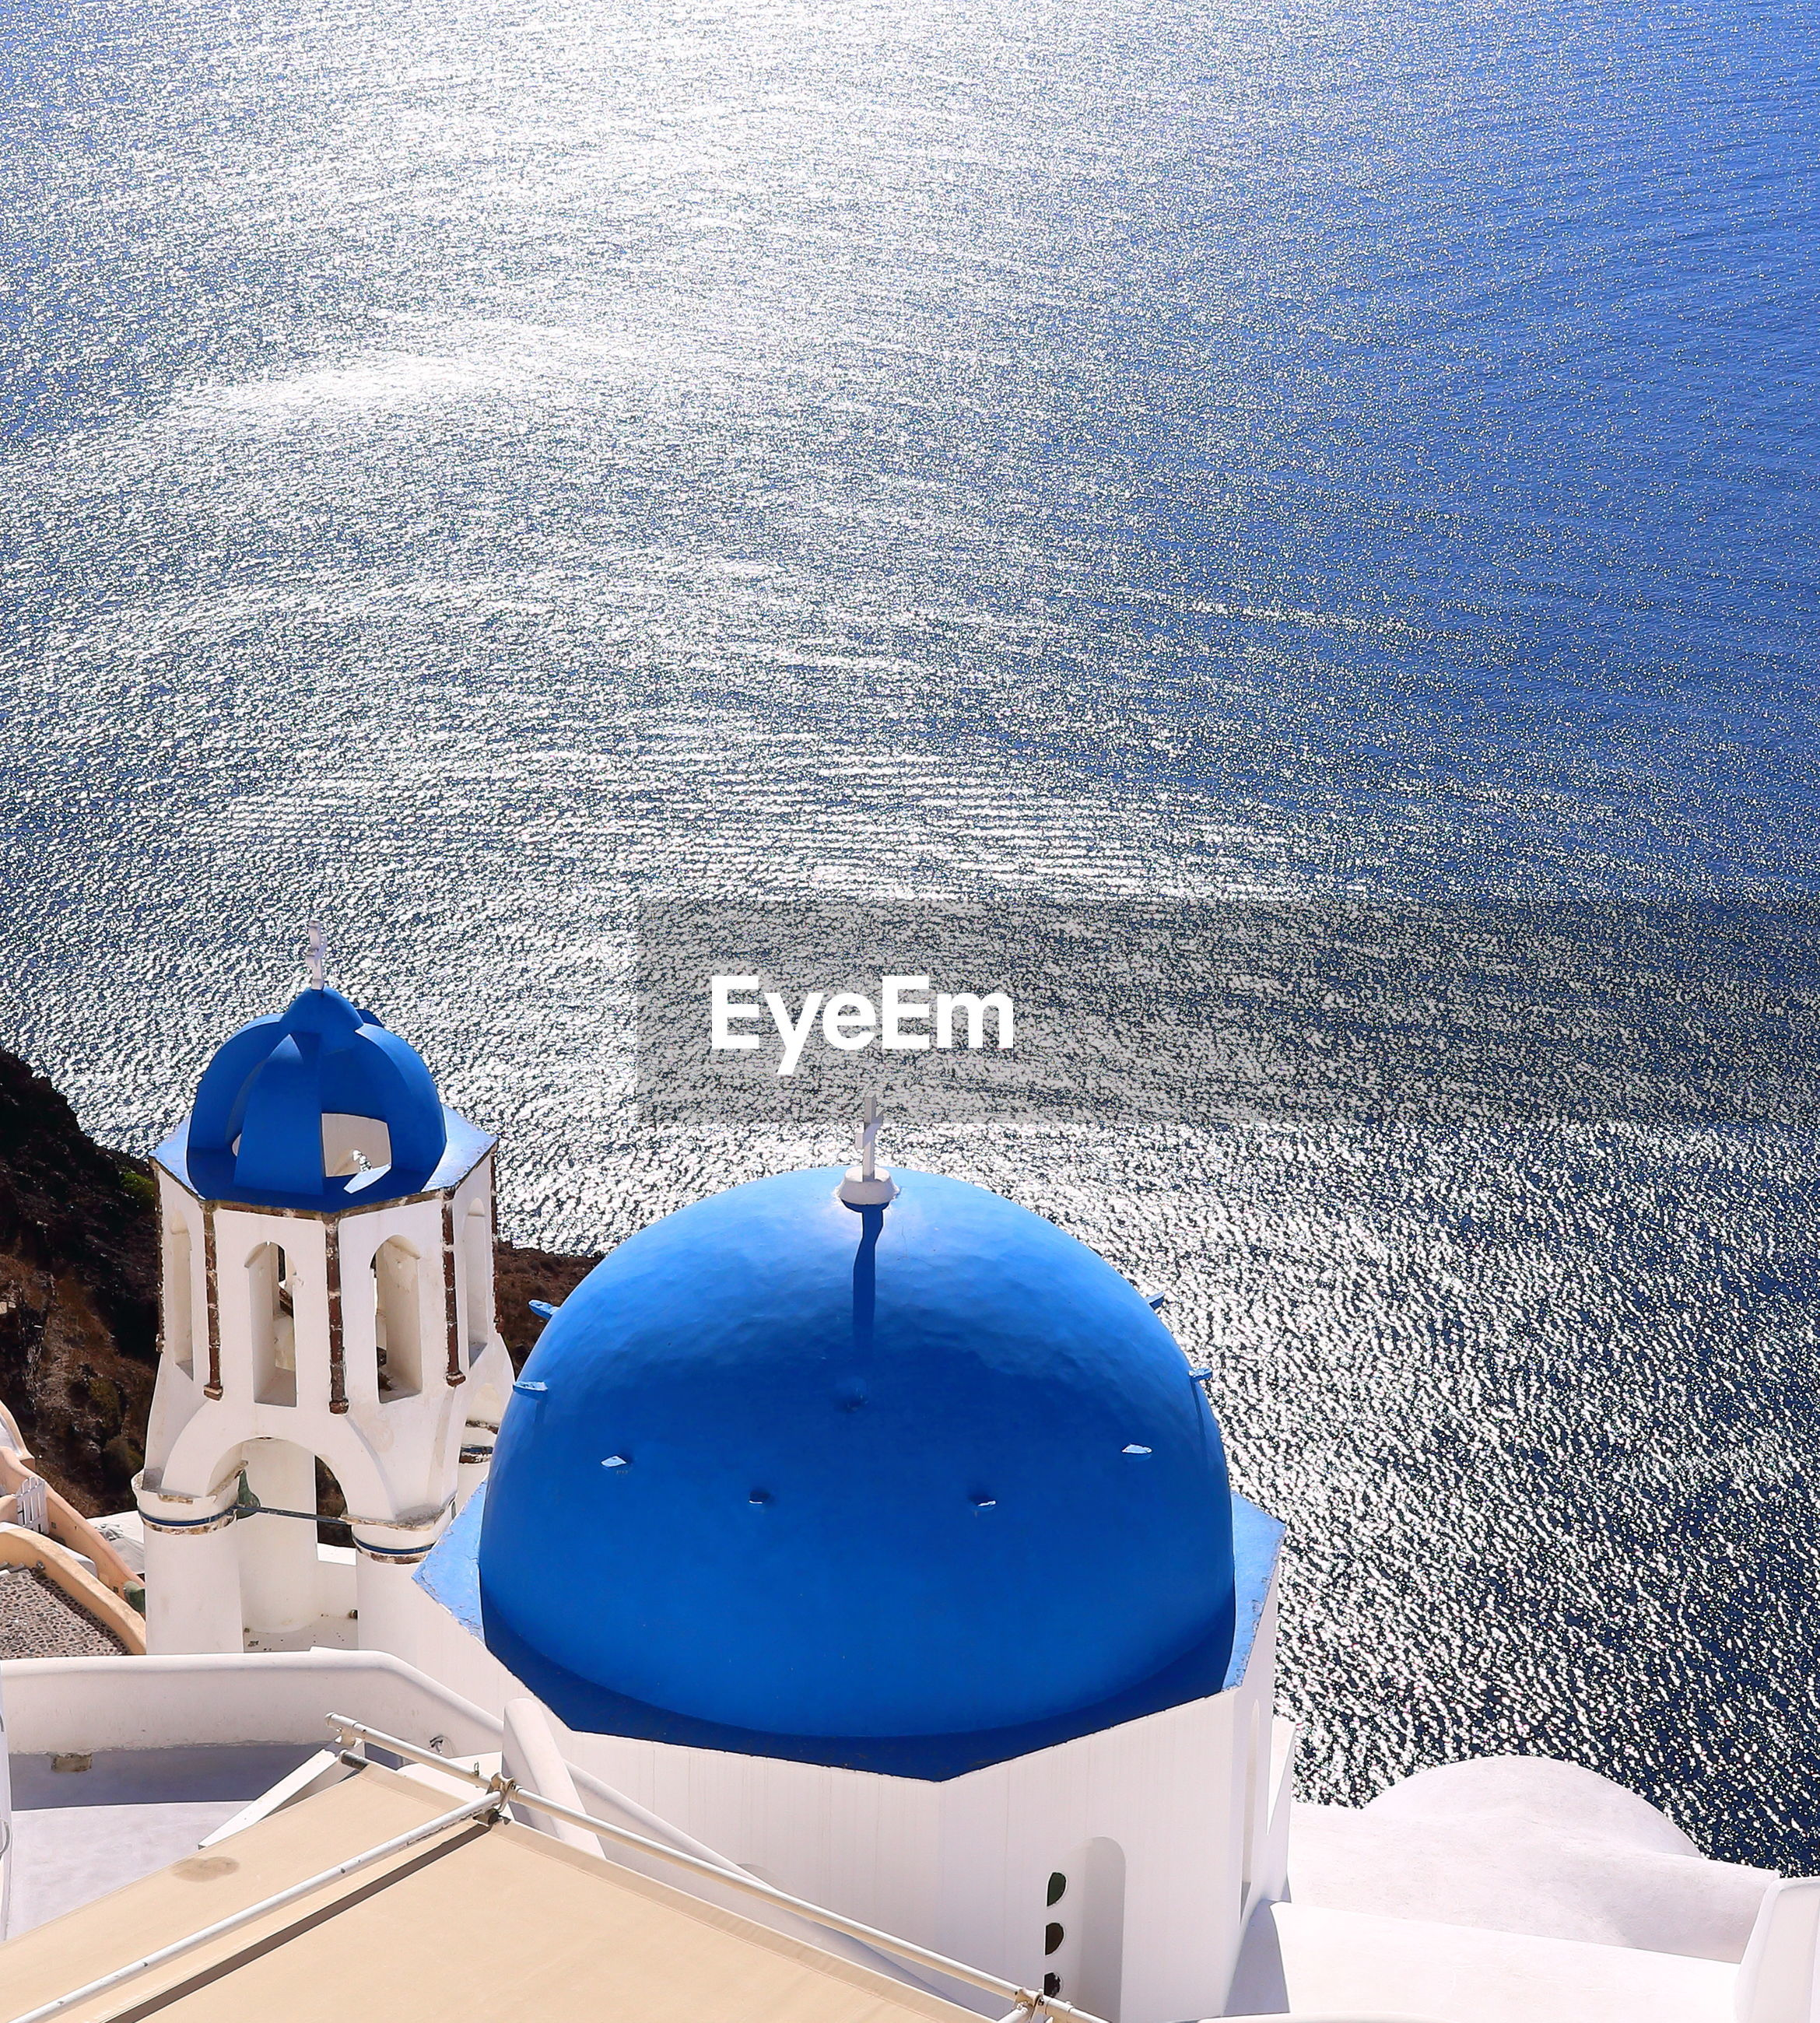 HIGH ANGLE VIEW OF BLUE SEA AGAINST SKY